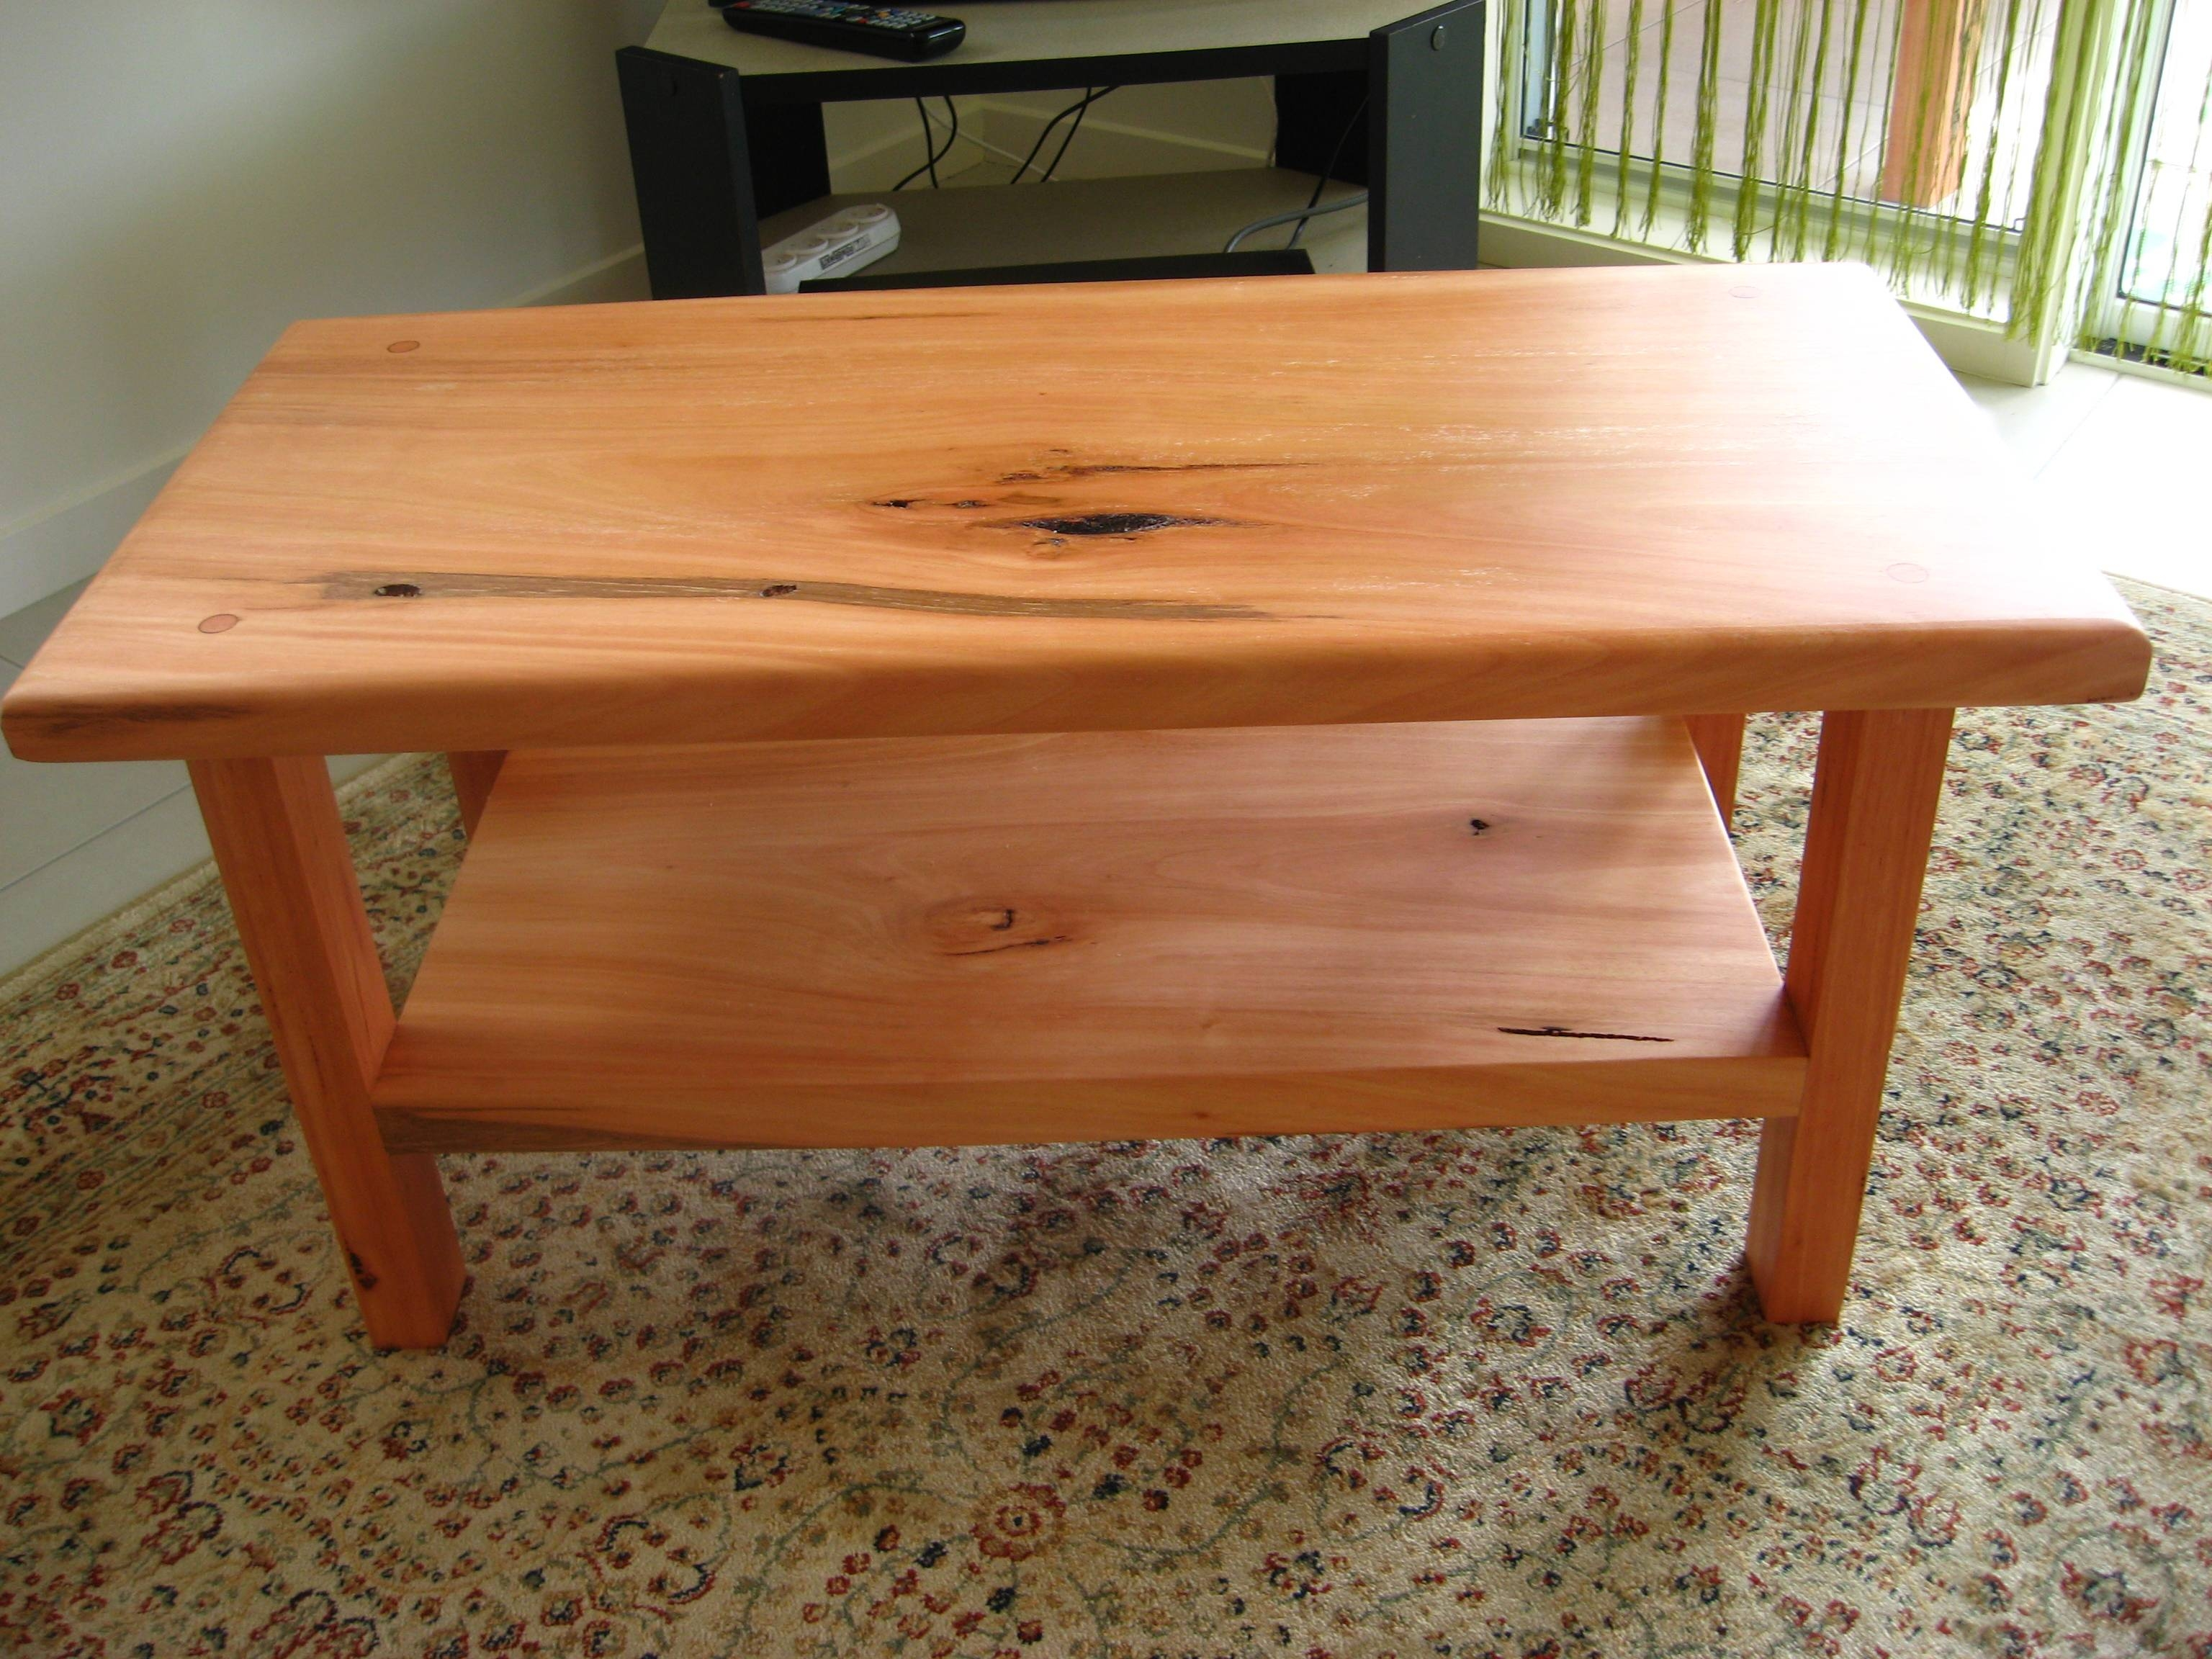 Coffee Tables Ideas: Wood Coffee Table Designs Custom Wood Coffee with regard to Handmade Wooden Coffee Tables (Image 3 of 15)